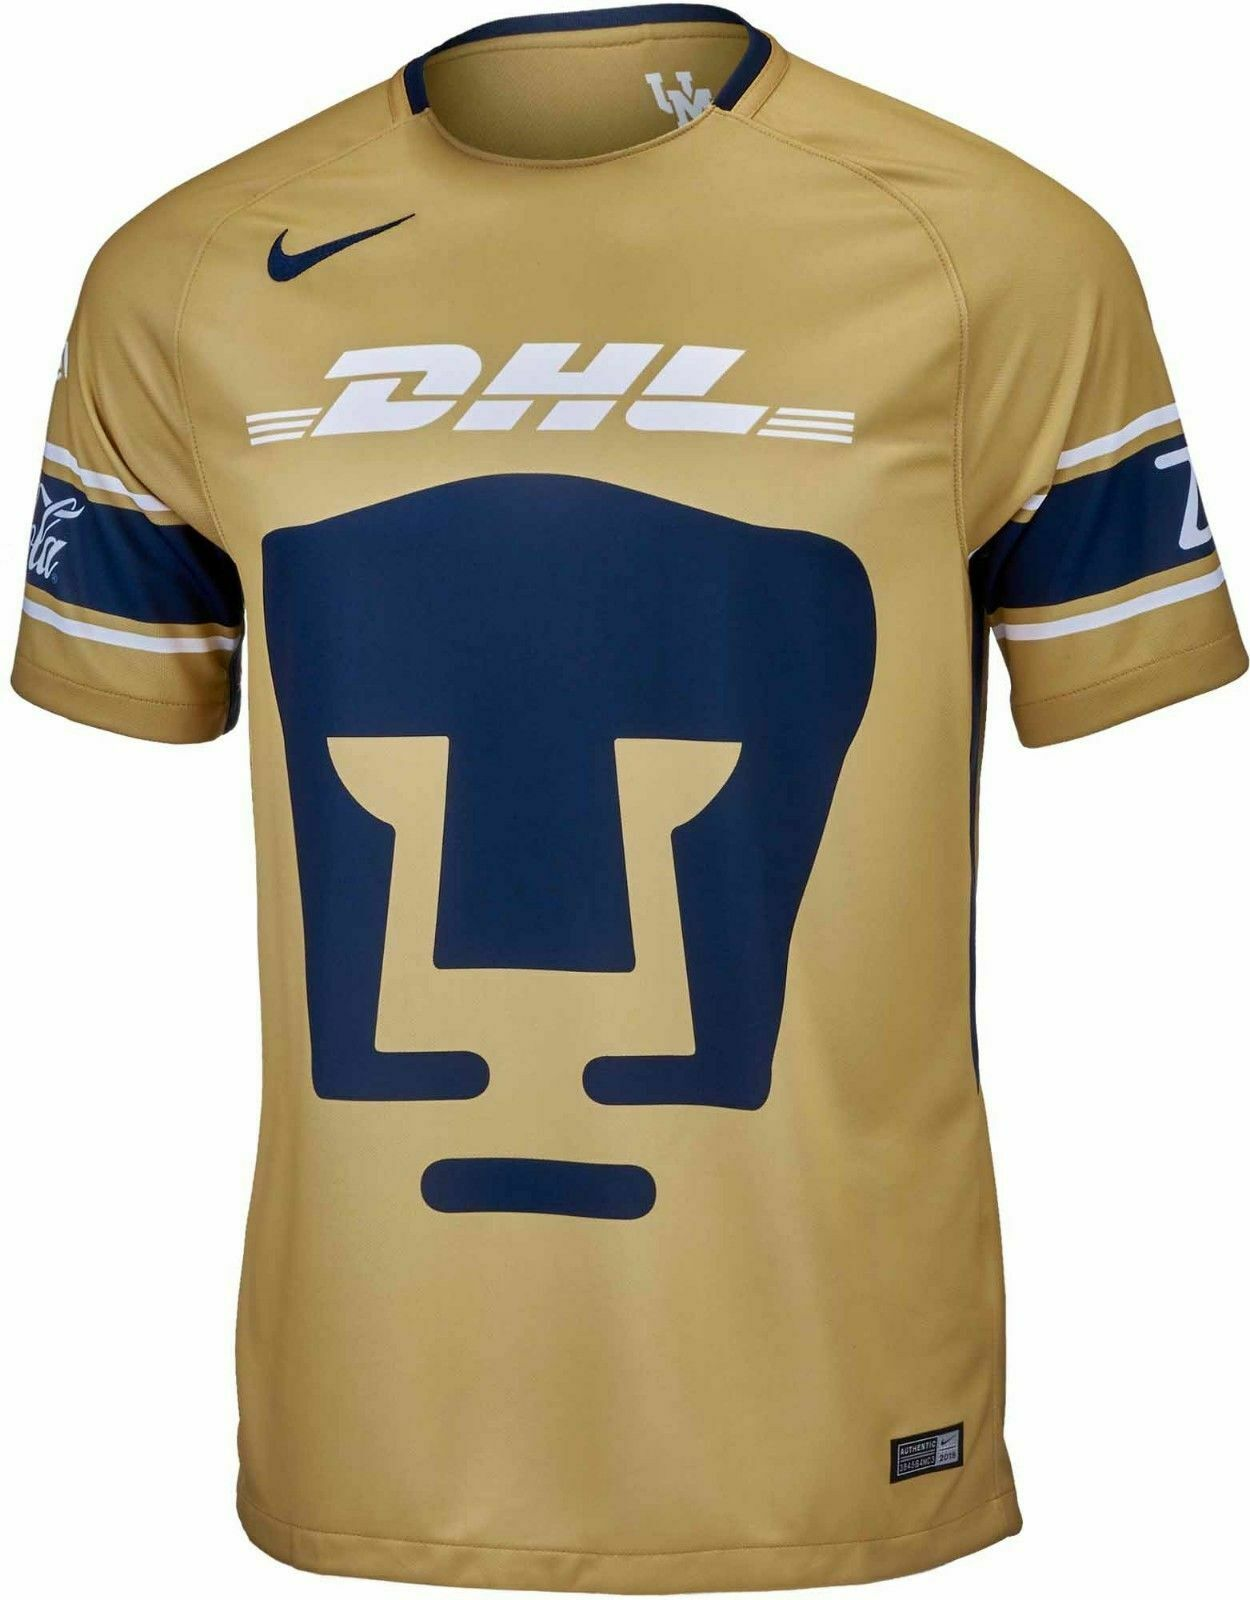 Nike Pumas UNAM 3rd Third Gala Authentic Soccer Jersey 17/18